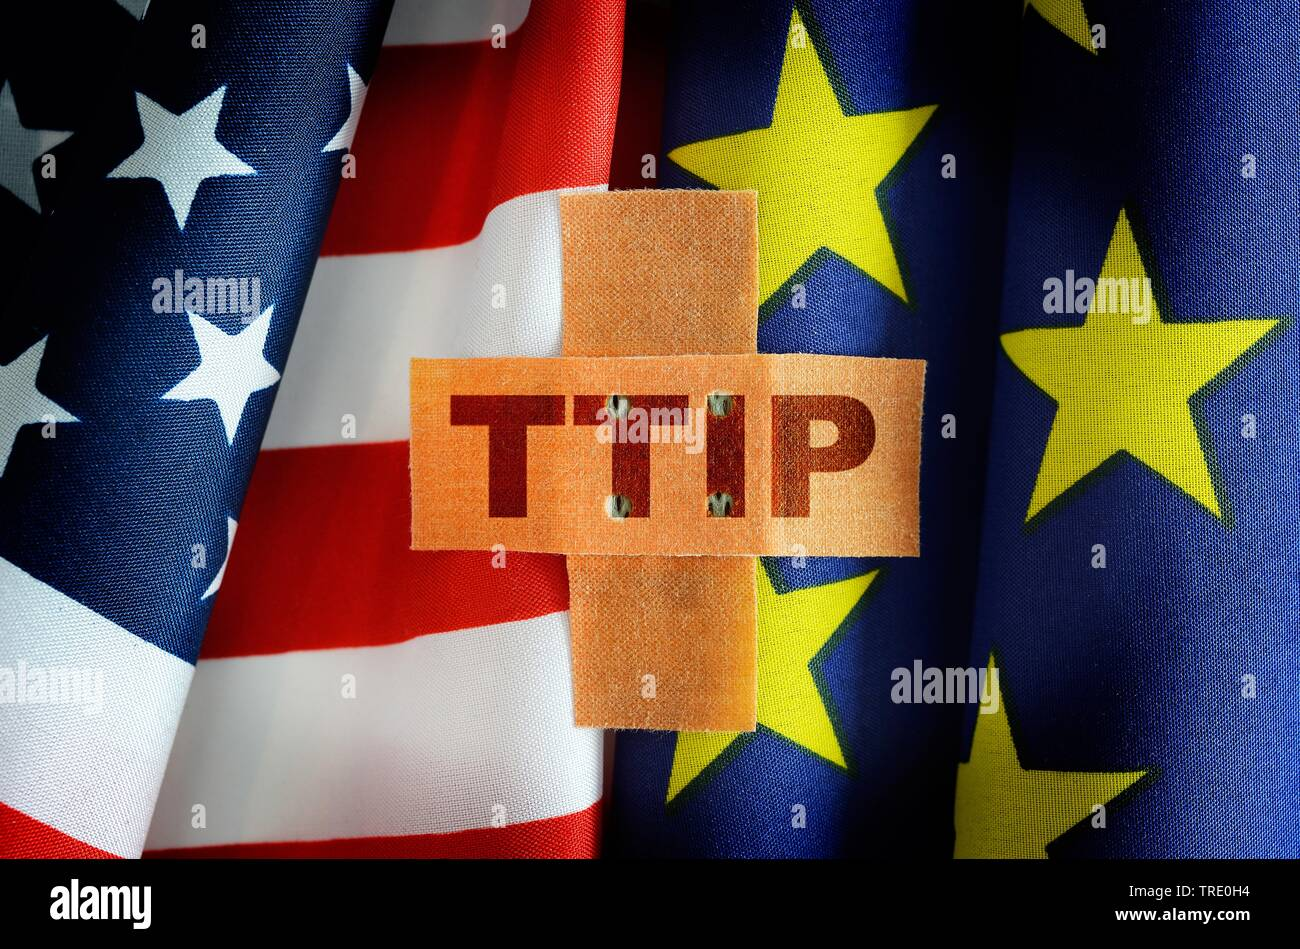 US und Europaflagge als Symbol fuer das TTIP-Freihandelsabkommen, Deutschland | US and European Union flags symbolizing the TTIP Trade Agreement, Germ - Stock Image